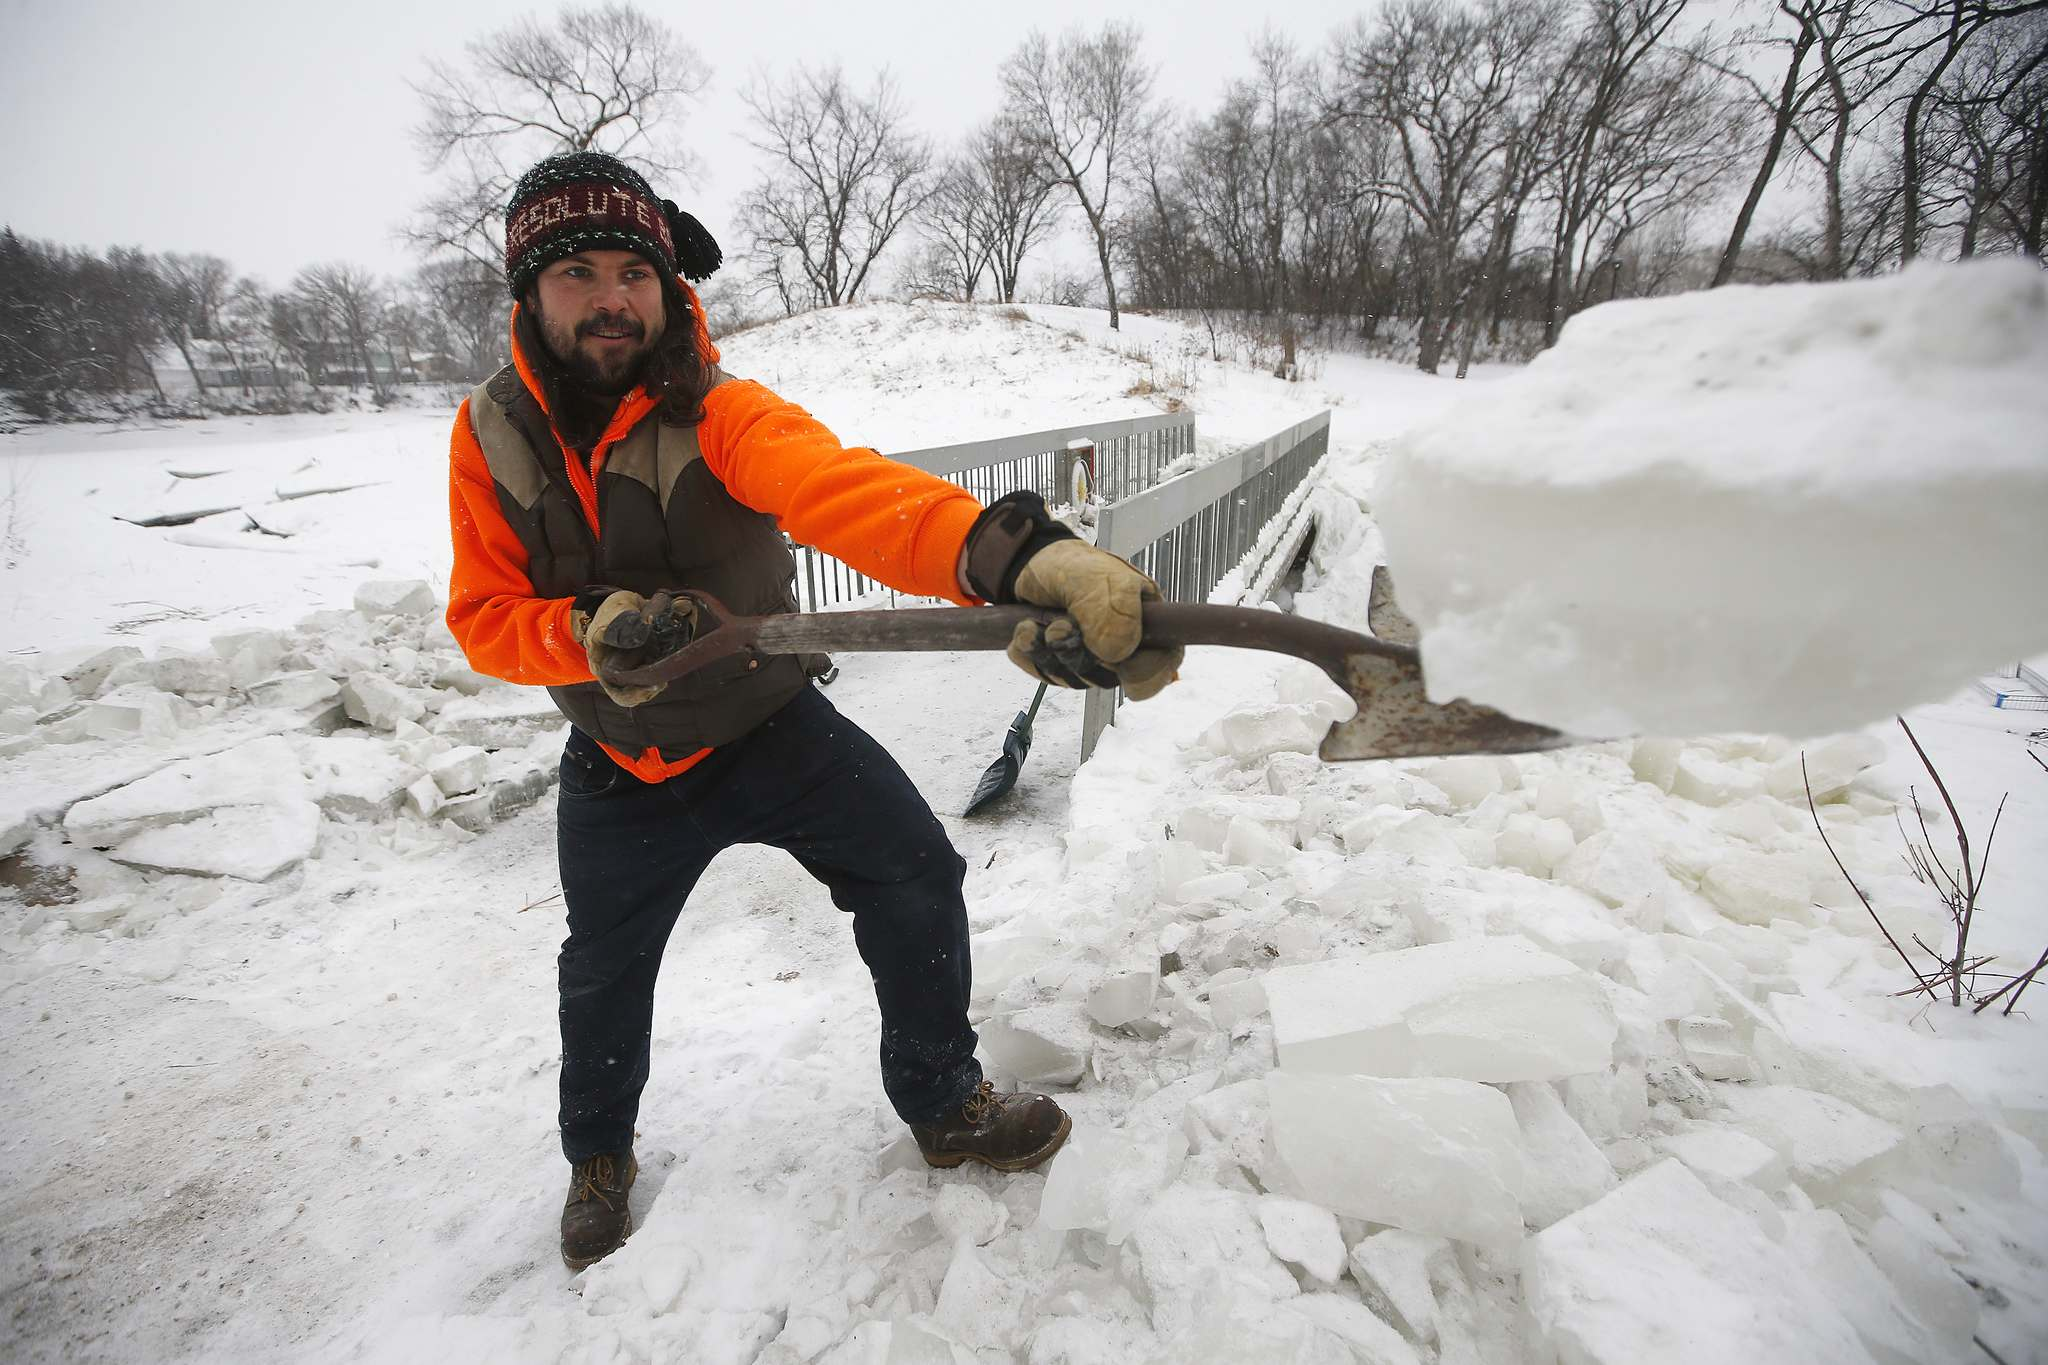 JOHN WOODS / WINNIPEG FREE PRESS FILES</p><p>Brad Hignell, pictured, and Wolseley resident Chris Beauvilain shovelled the snow and ice from the Omand's Creek bridge after the city closed it to pedestrians in December.</p>